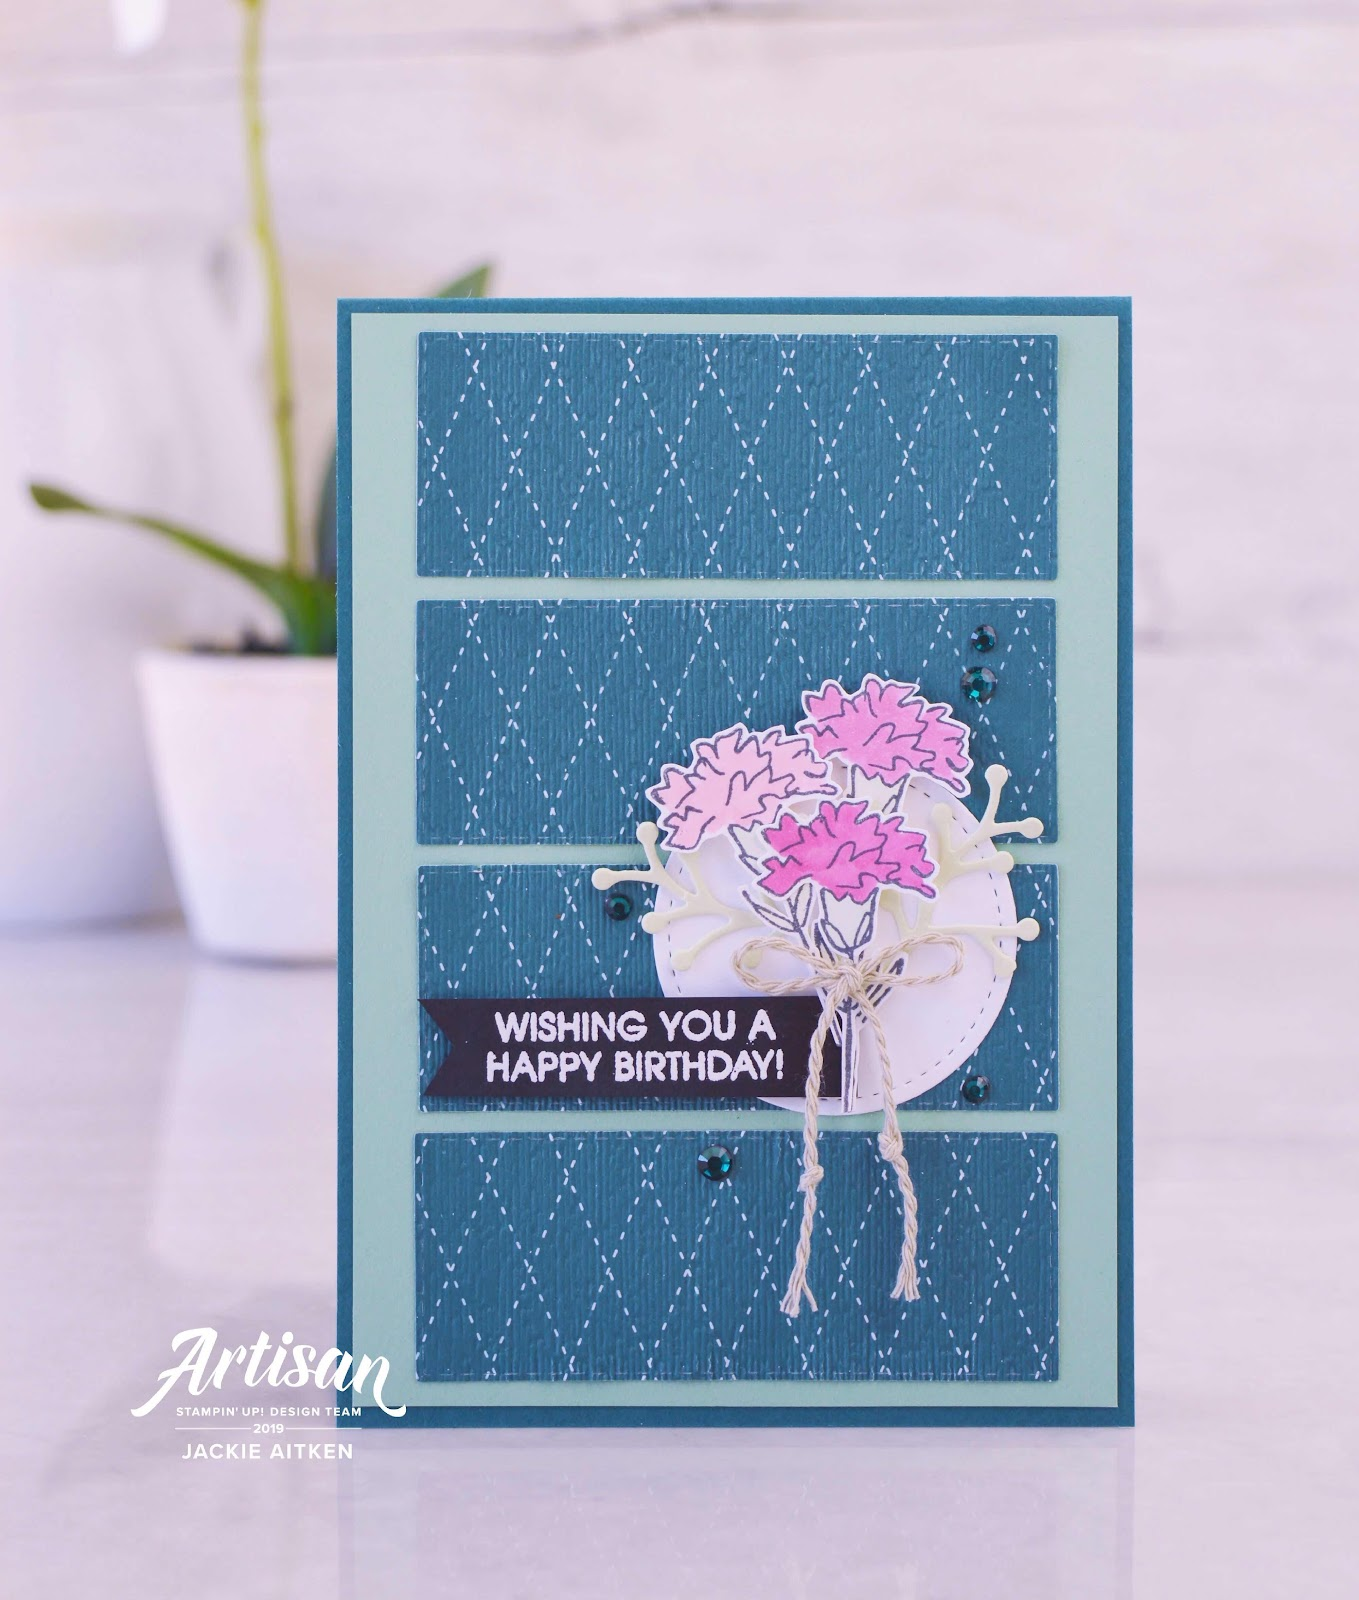 jaxx crafty creations, stampin up, 2019-2021 In Colours, Pretty Peacock, Scripty Embossing Folder, Beautiful Friendship, Inspiring Iris, Floral cards